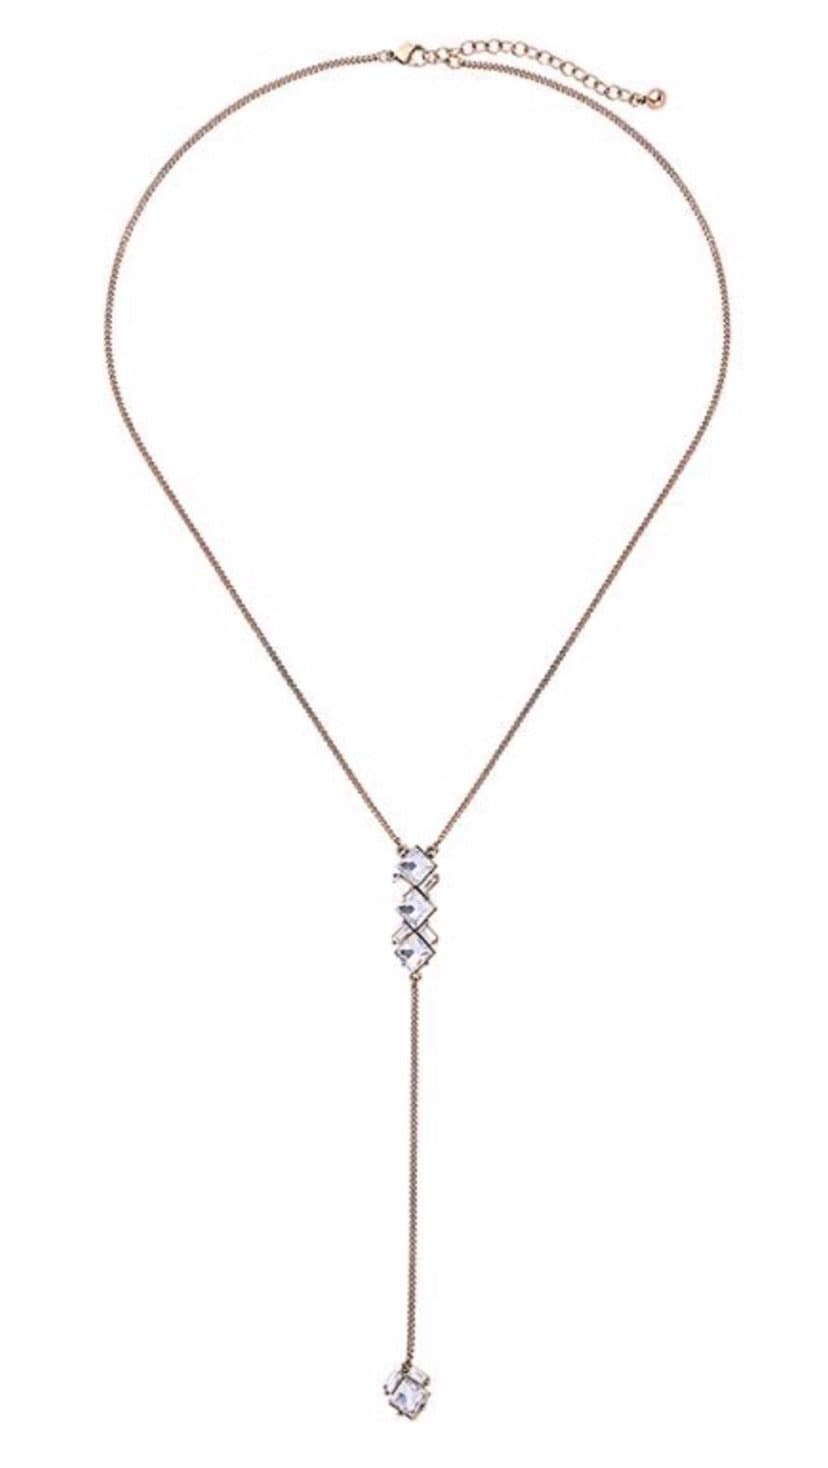 Clear Gem Drop Chain Necklace in Gold - Aurina Ltd